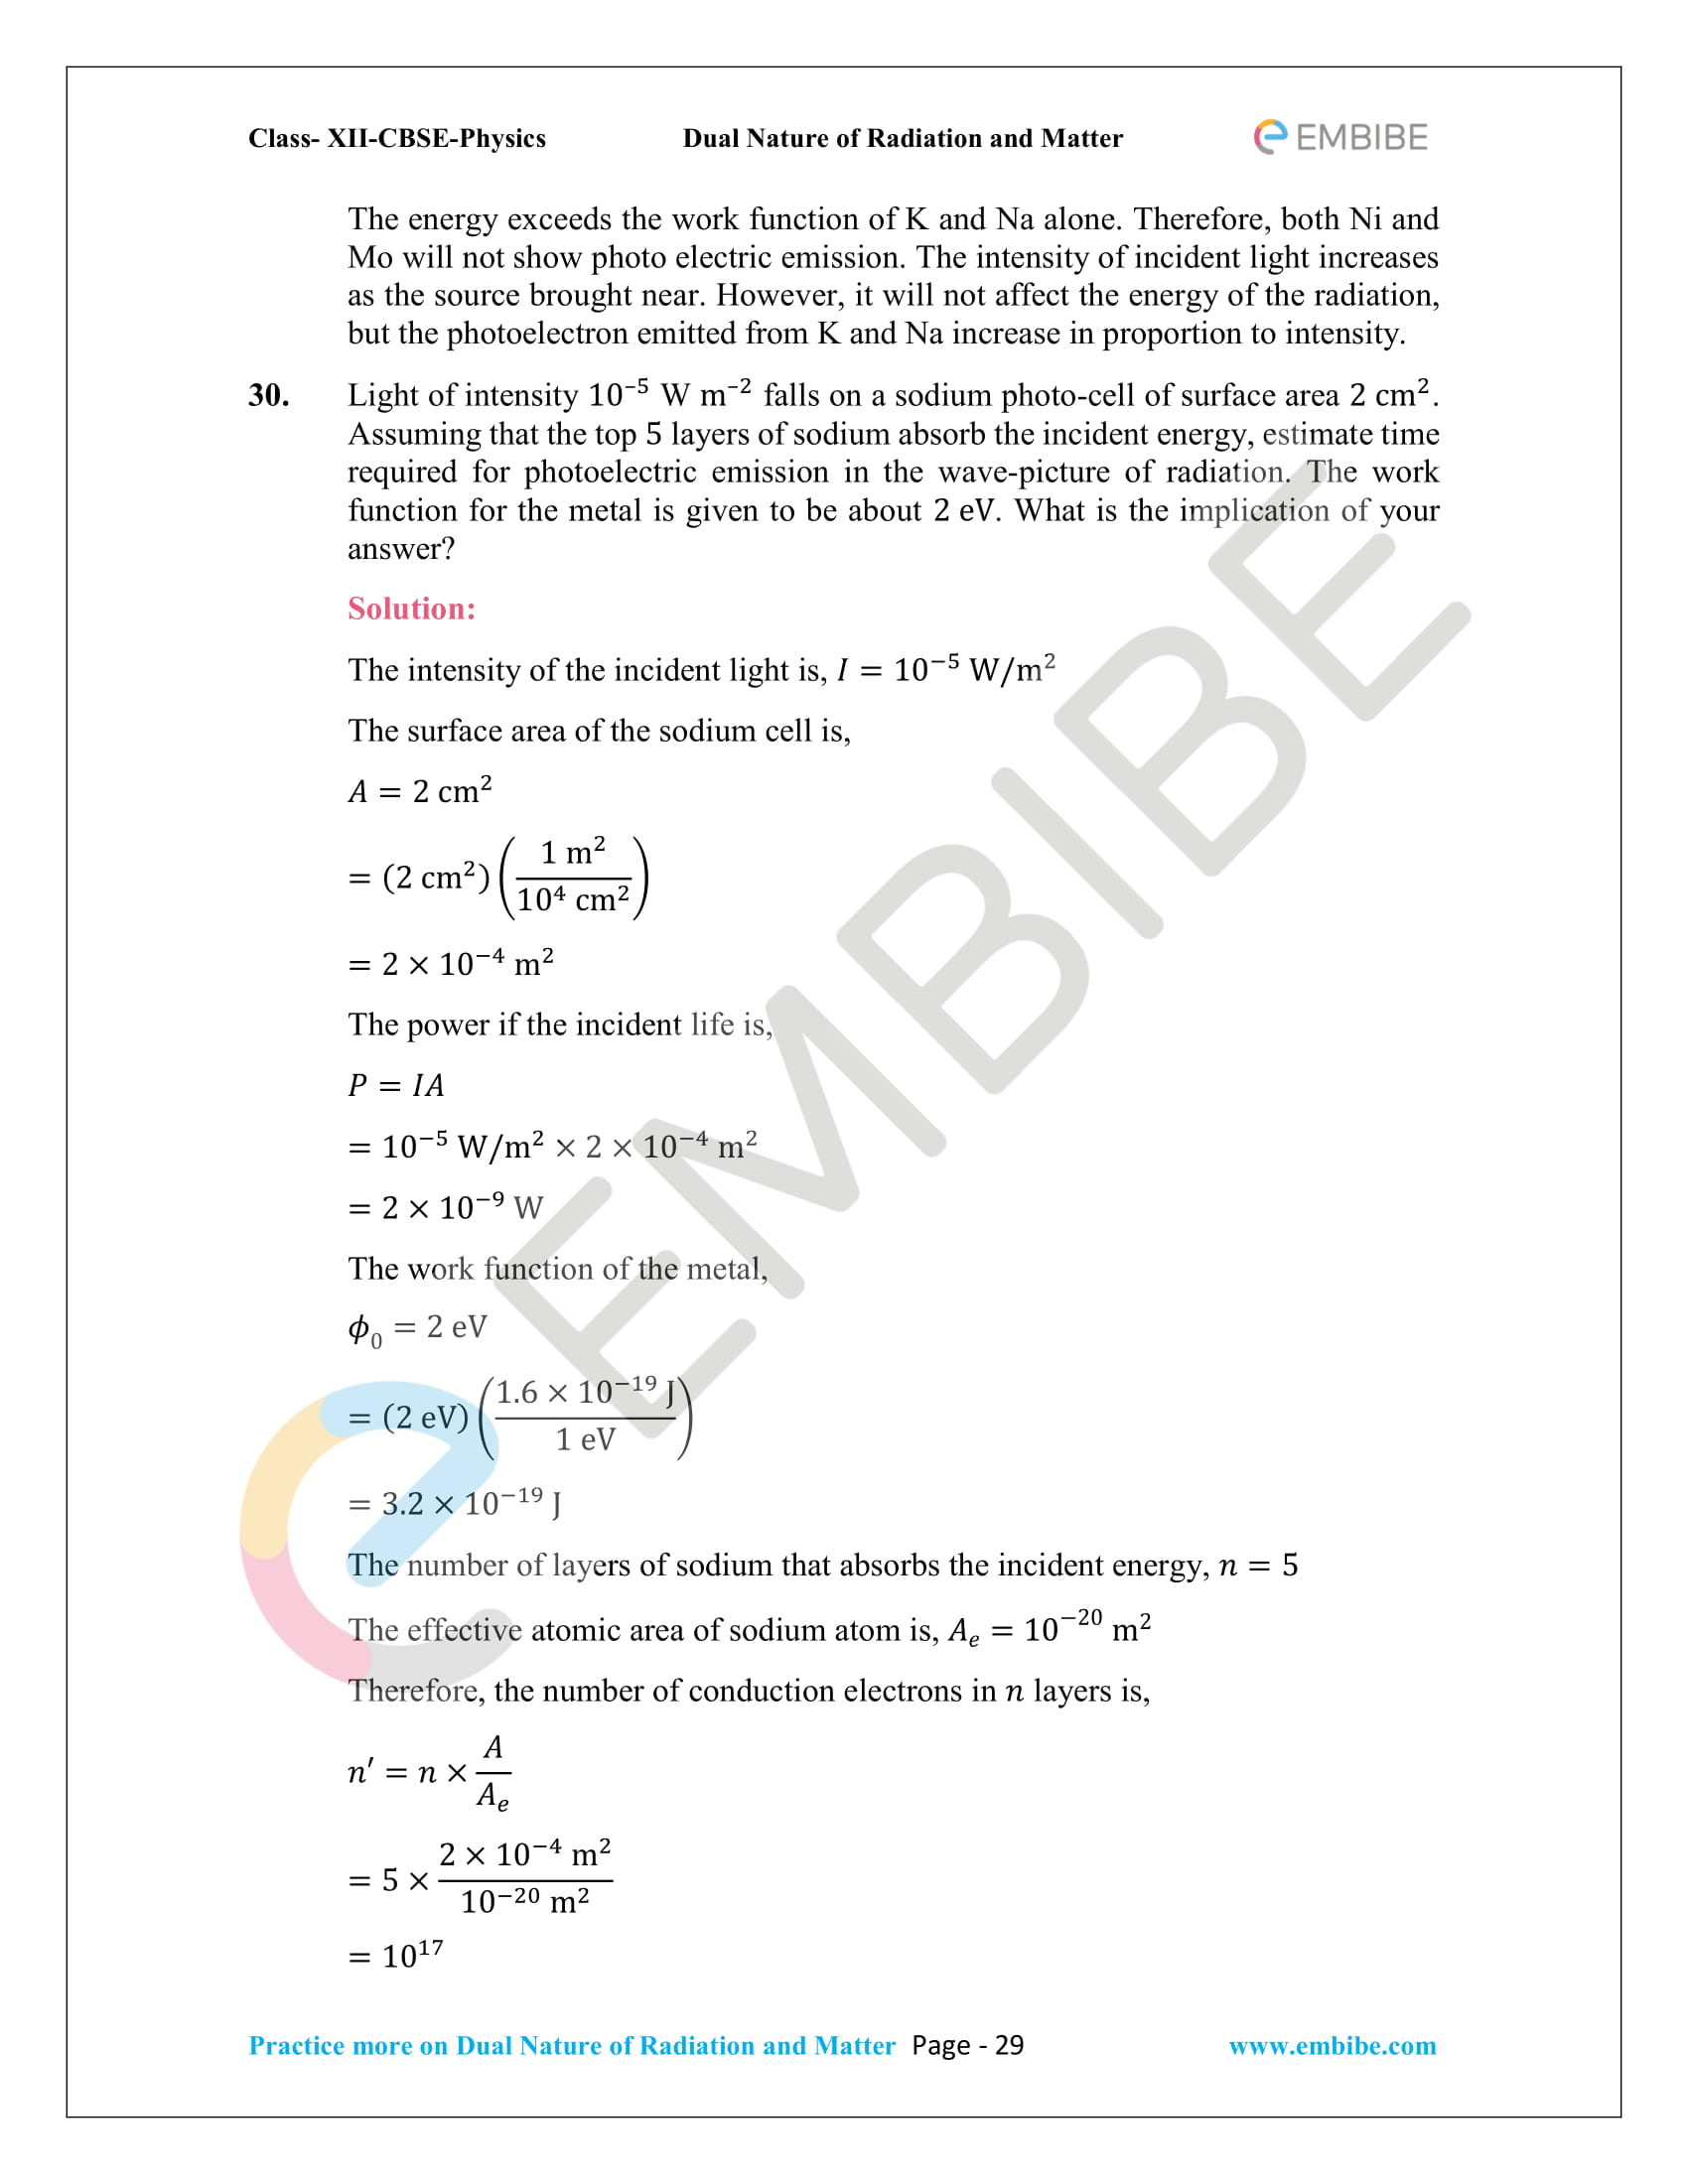 NCERT_Grade 12_Physics_Ch_11_Dual Nature of Radiation and Matter-29